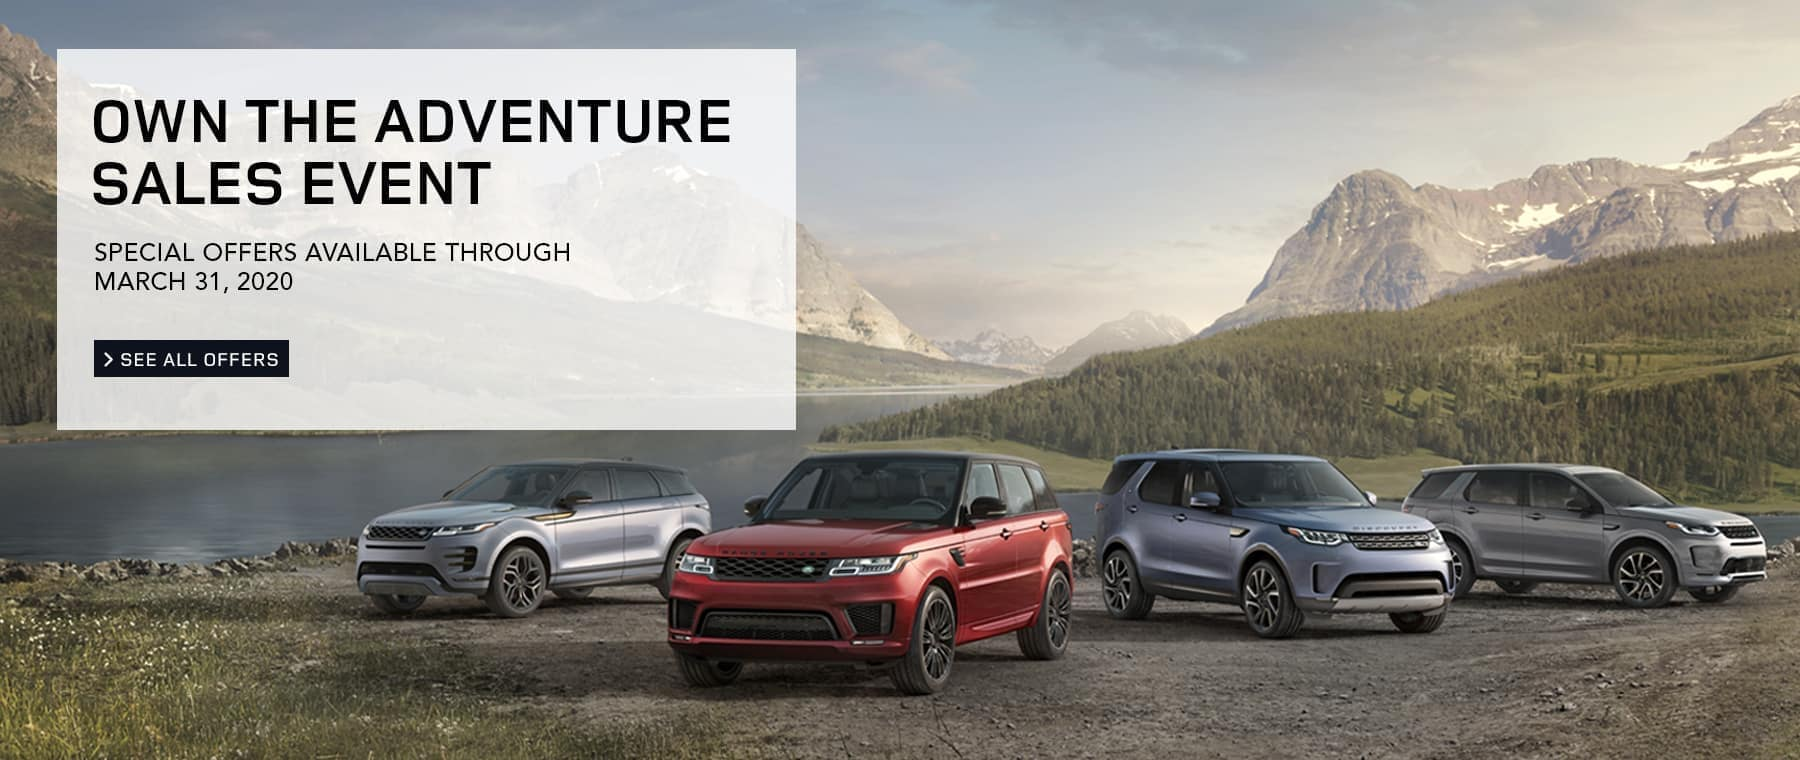 Own The Adventure Sales Event